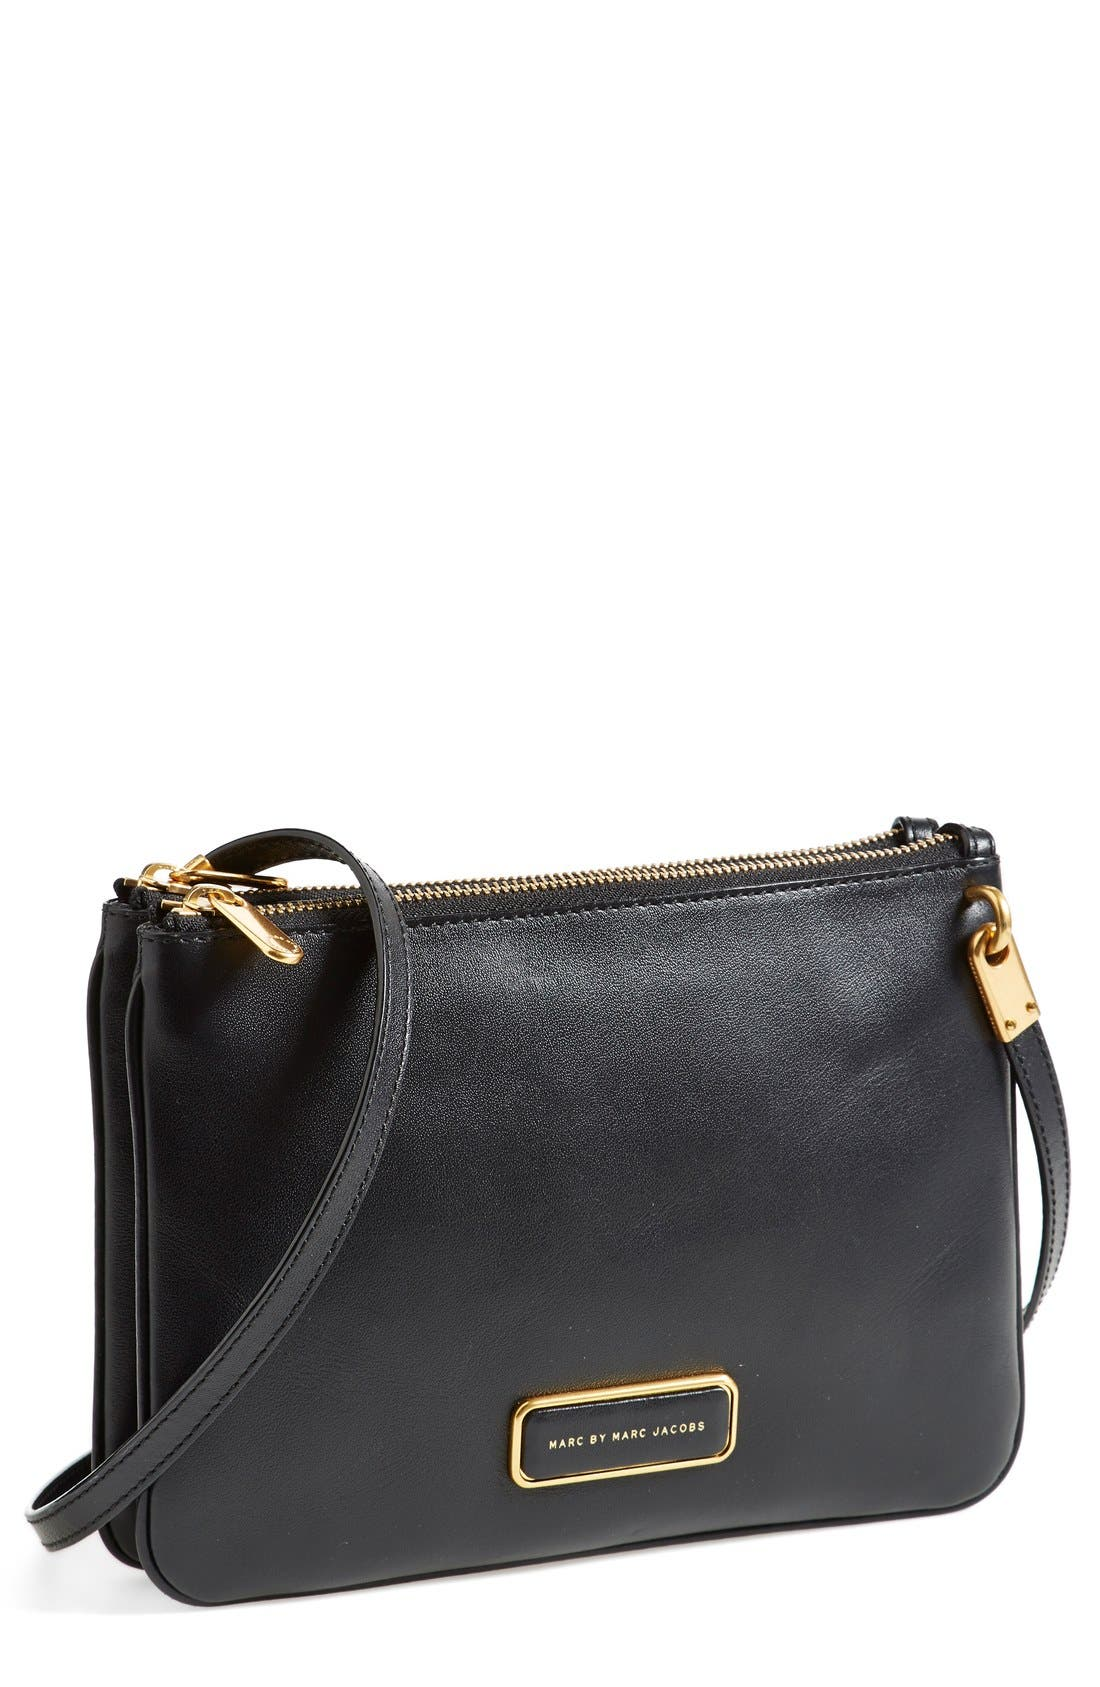 MARC JACOBS,                             MARC BY MARC JACOBS 'Double Percy' Crossbody Bag,                             Main thumbnail 1, color,                             001